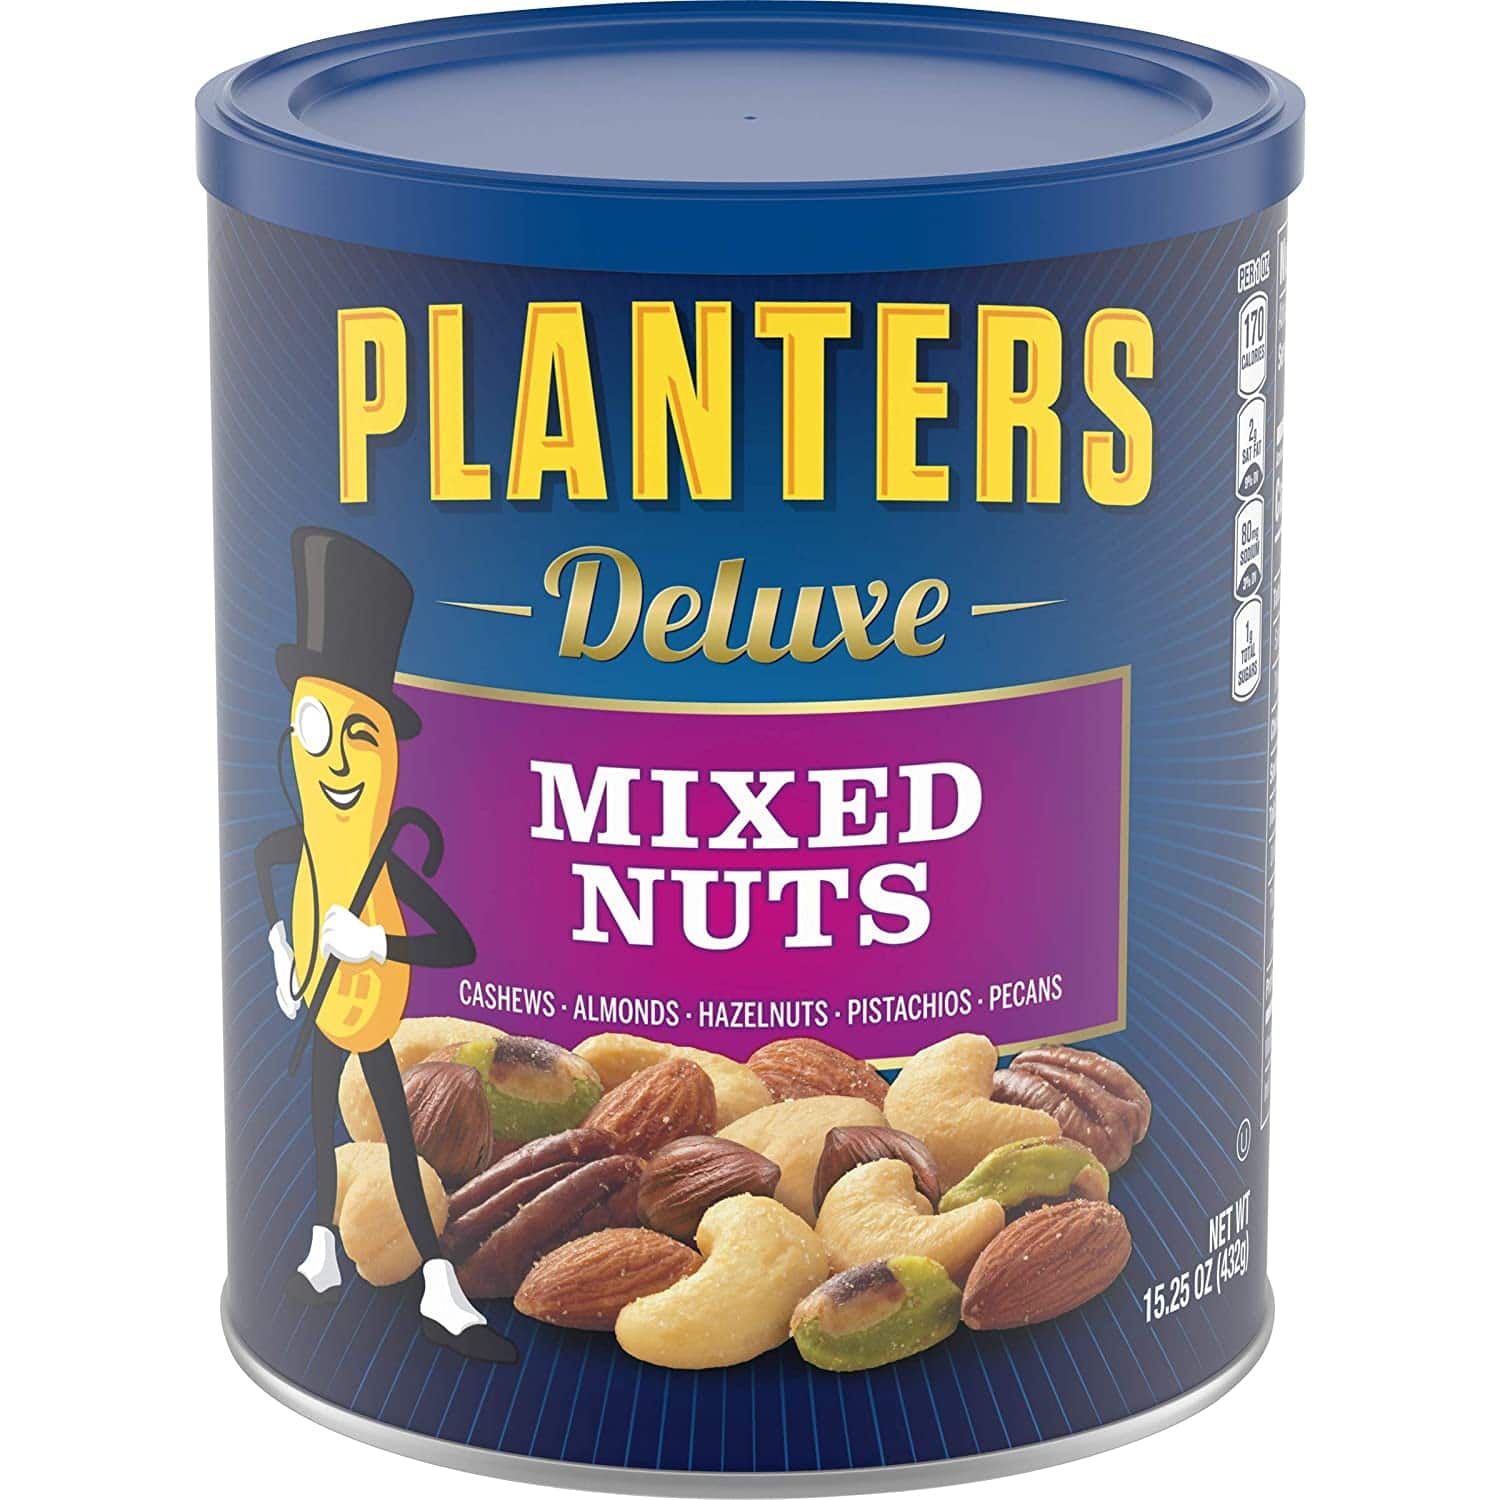 15.25-oz Planters Deluxe Mixed Nuts $6.78 or less w/ S&S